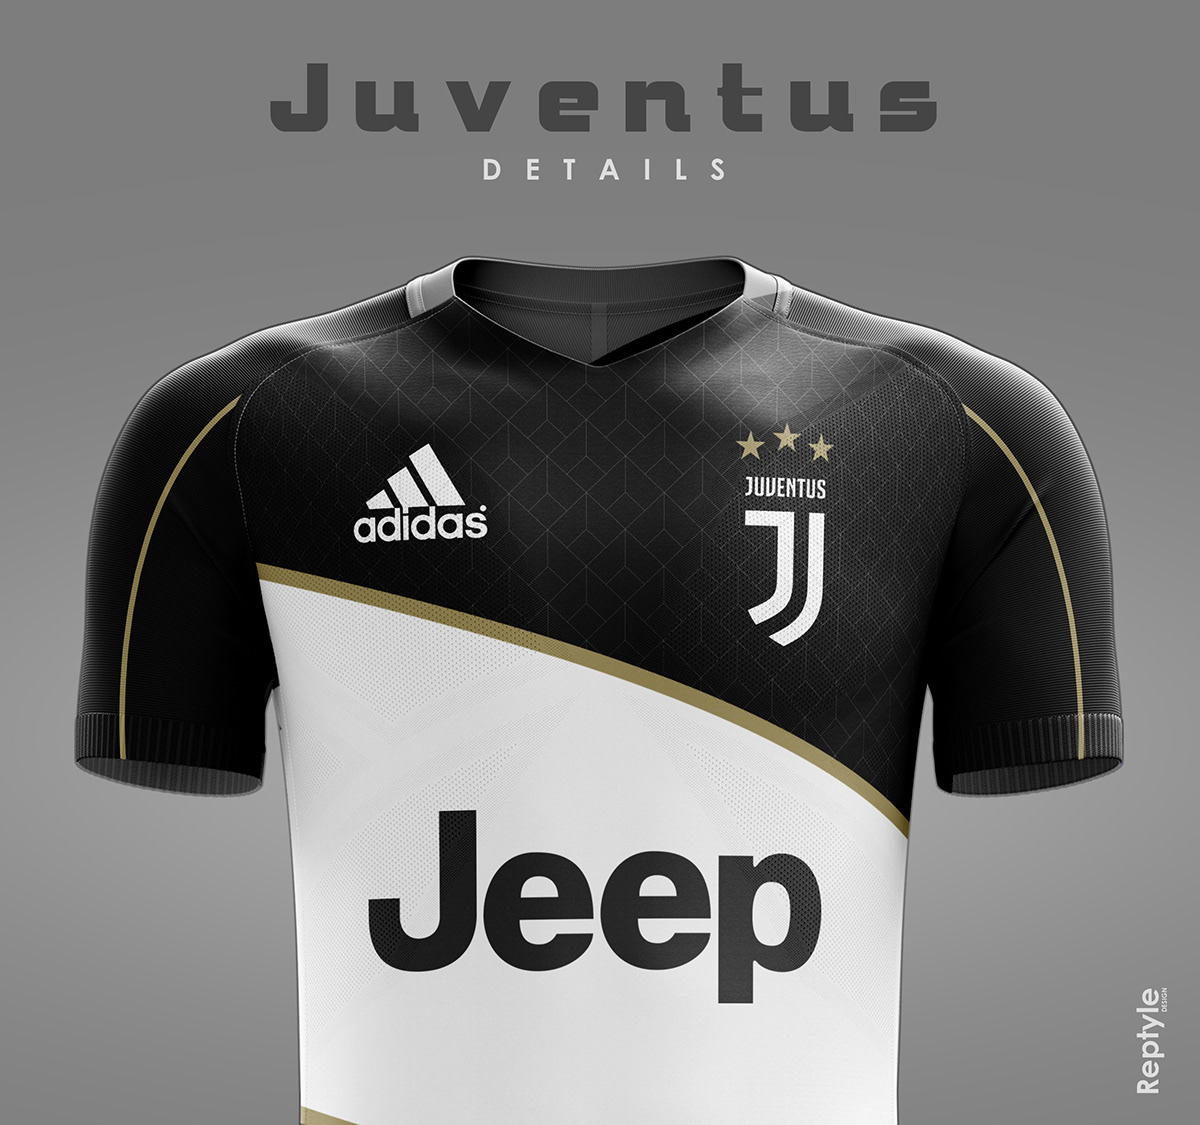 Juventus FC soccer kit concept. Maurizio Moretti •. Follow Following  Unfollow. Save to Collection f87e78707